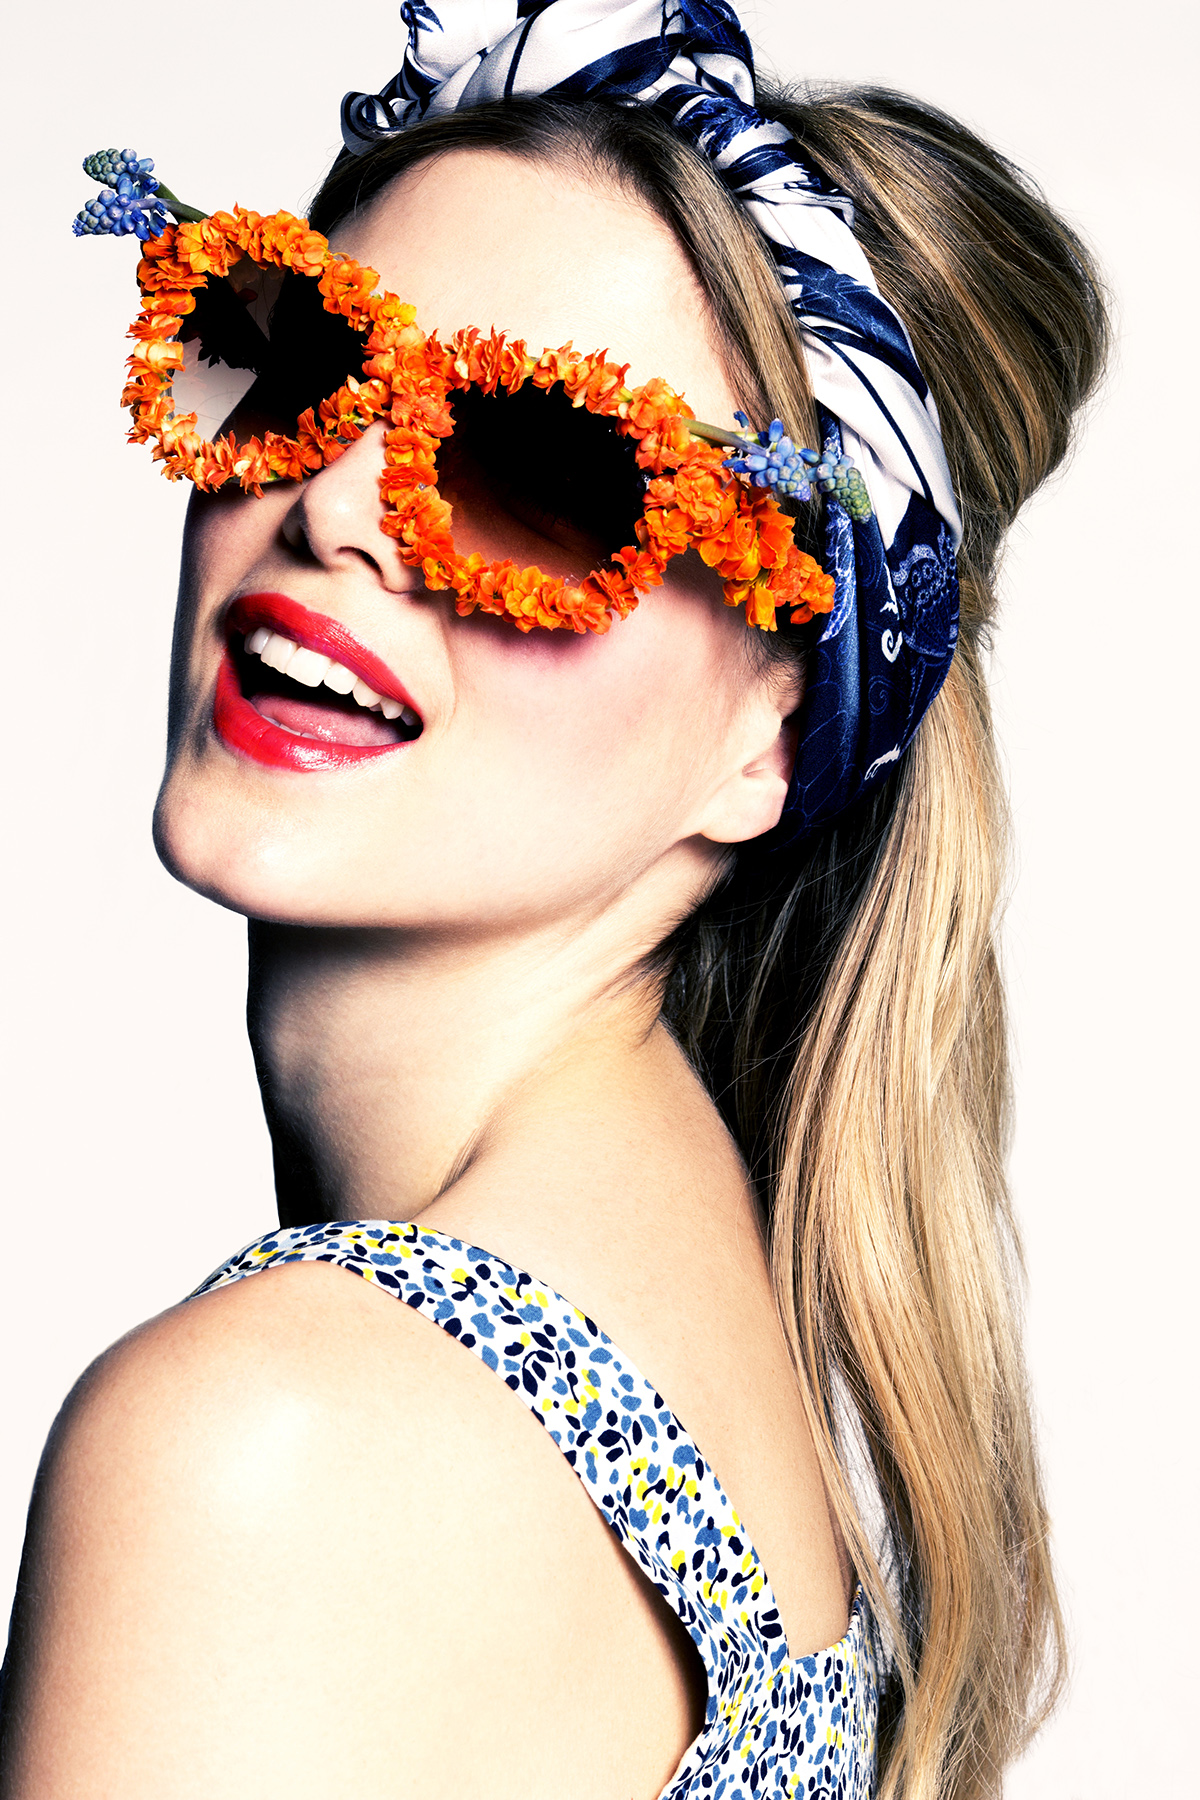 The Spring Summer accessories camaign at McArthurGlen Designer Outlets UK -2nd 20th April, featuring Ashley James (3)